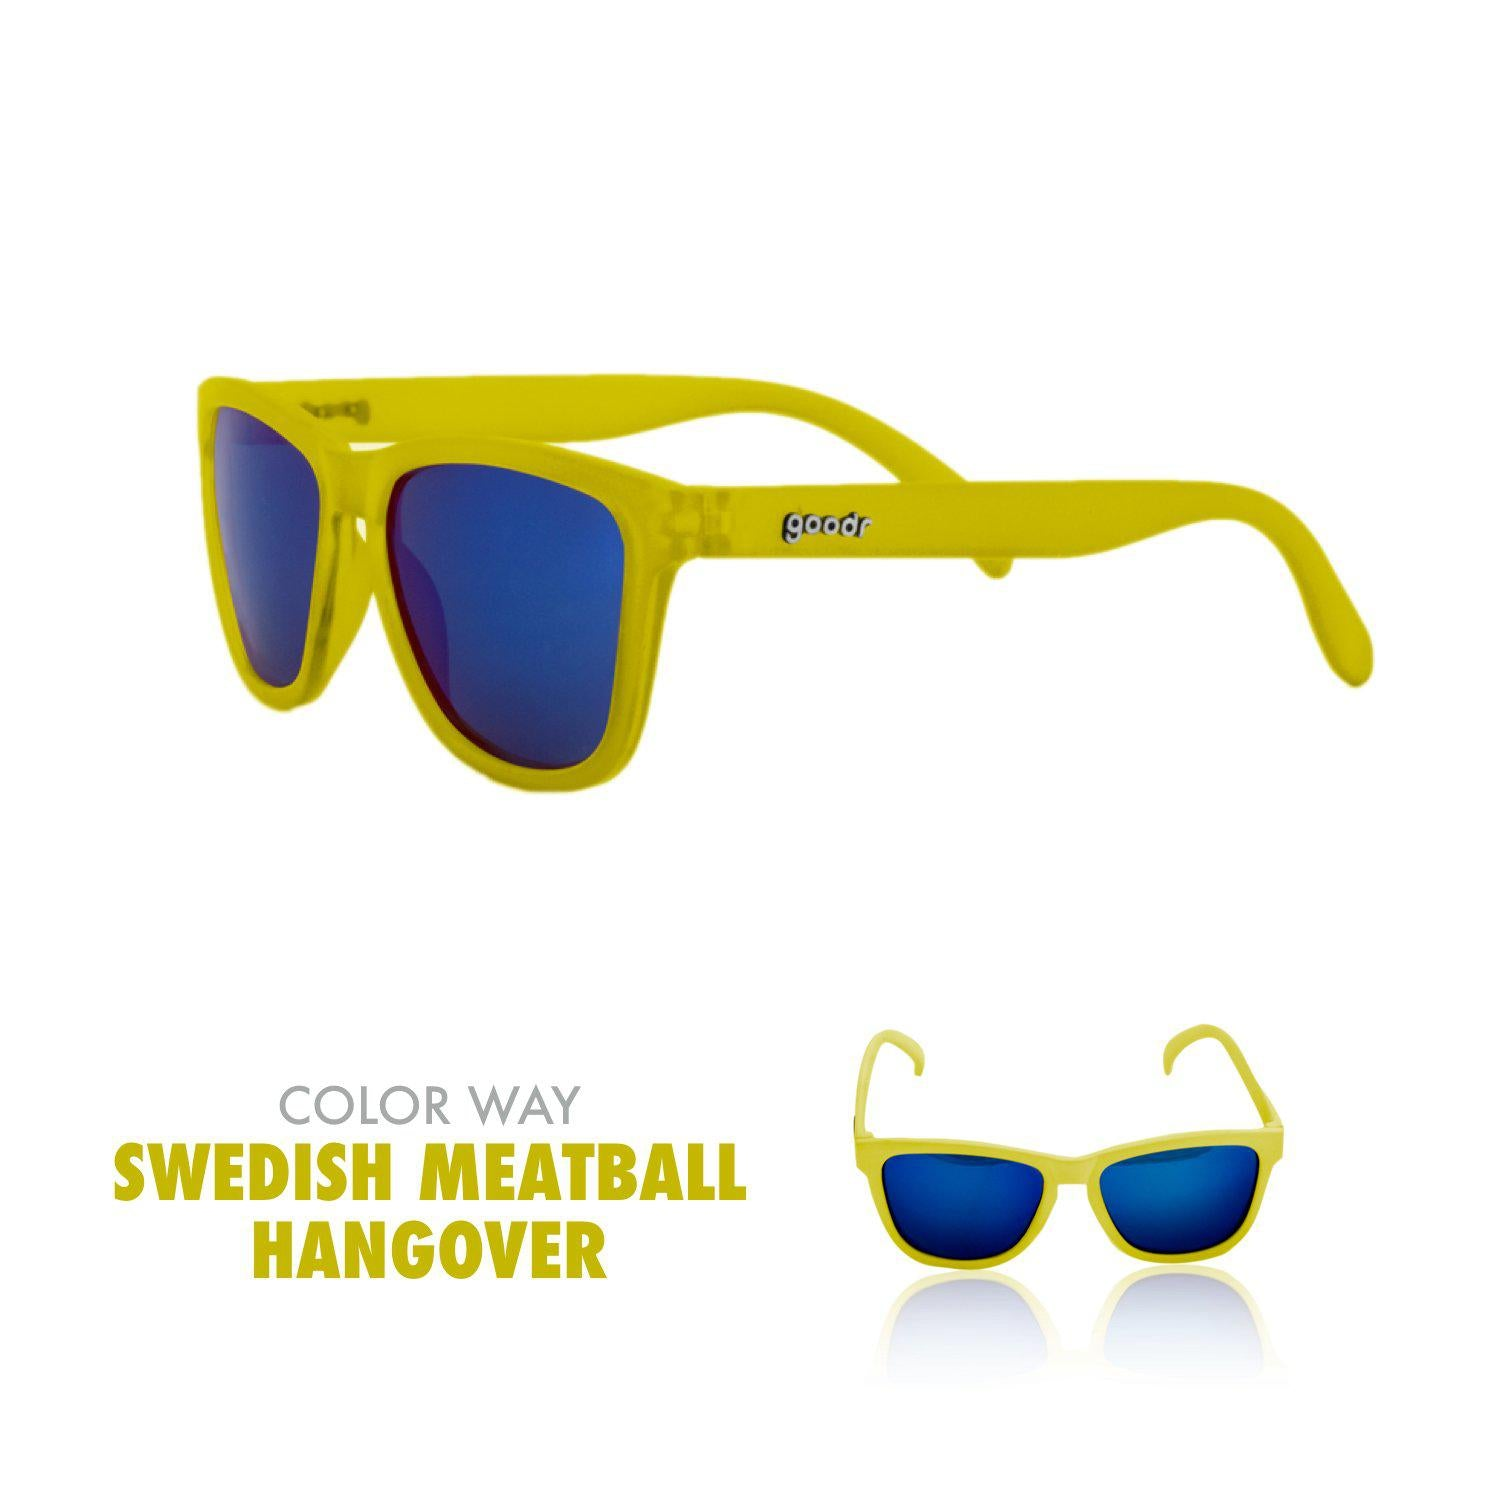 Goodr Running Sun Glasses-Clothing Accessories-Goodr-Swedish Meatball Hangover-2 Foot Adventures